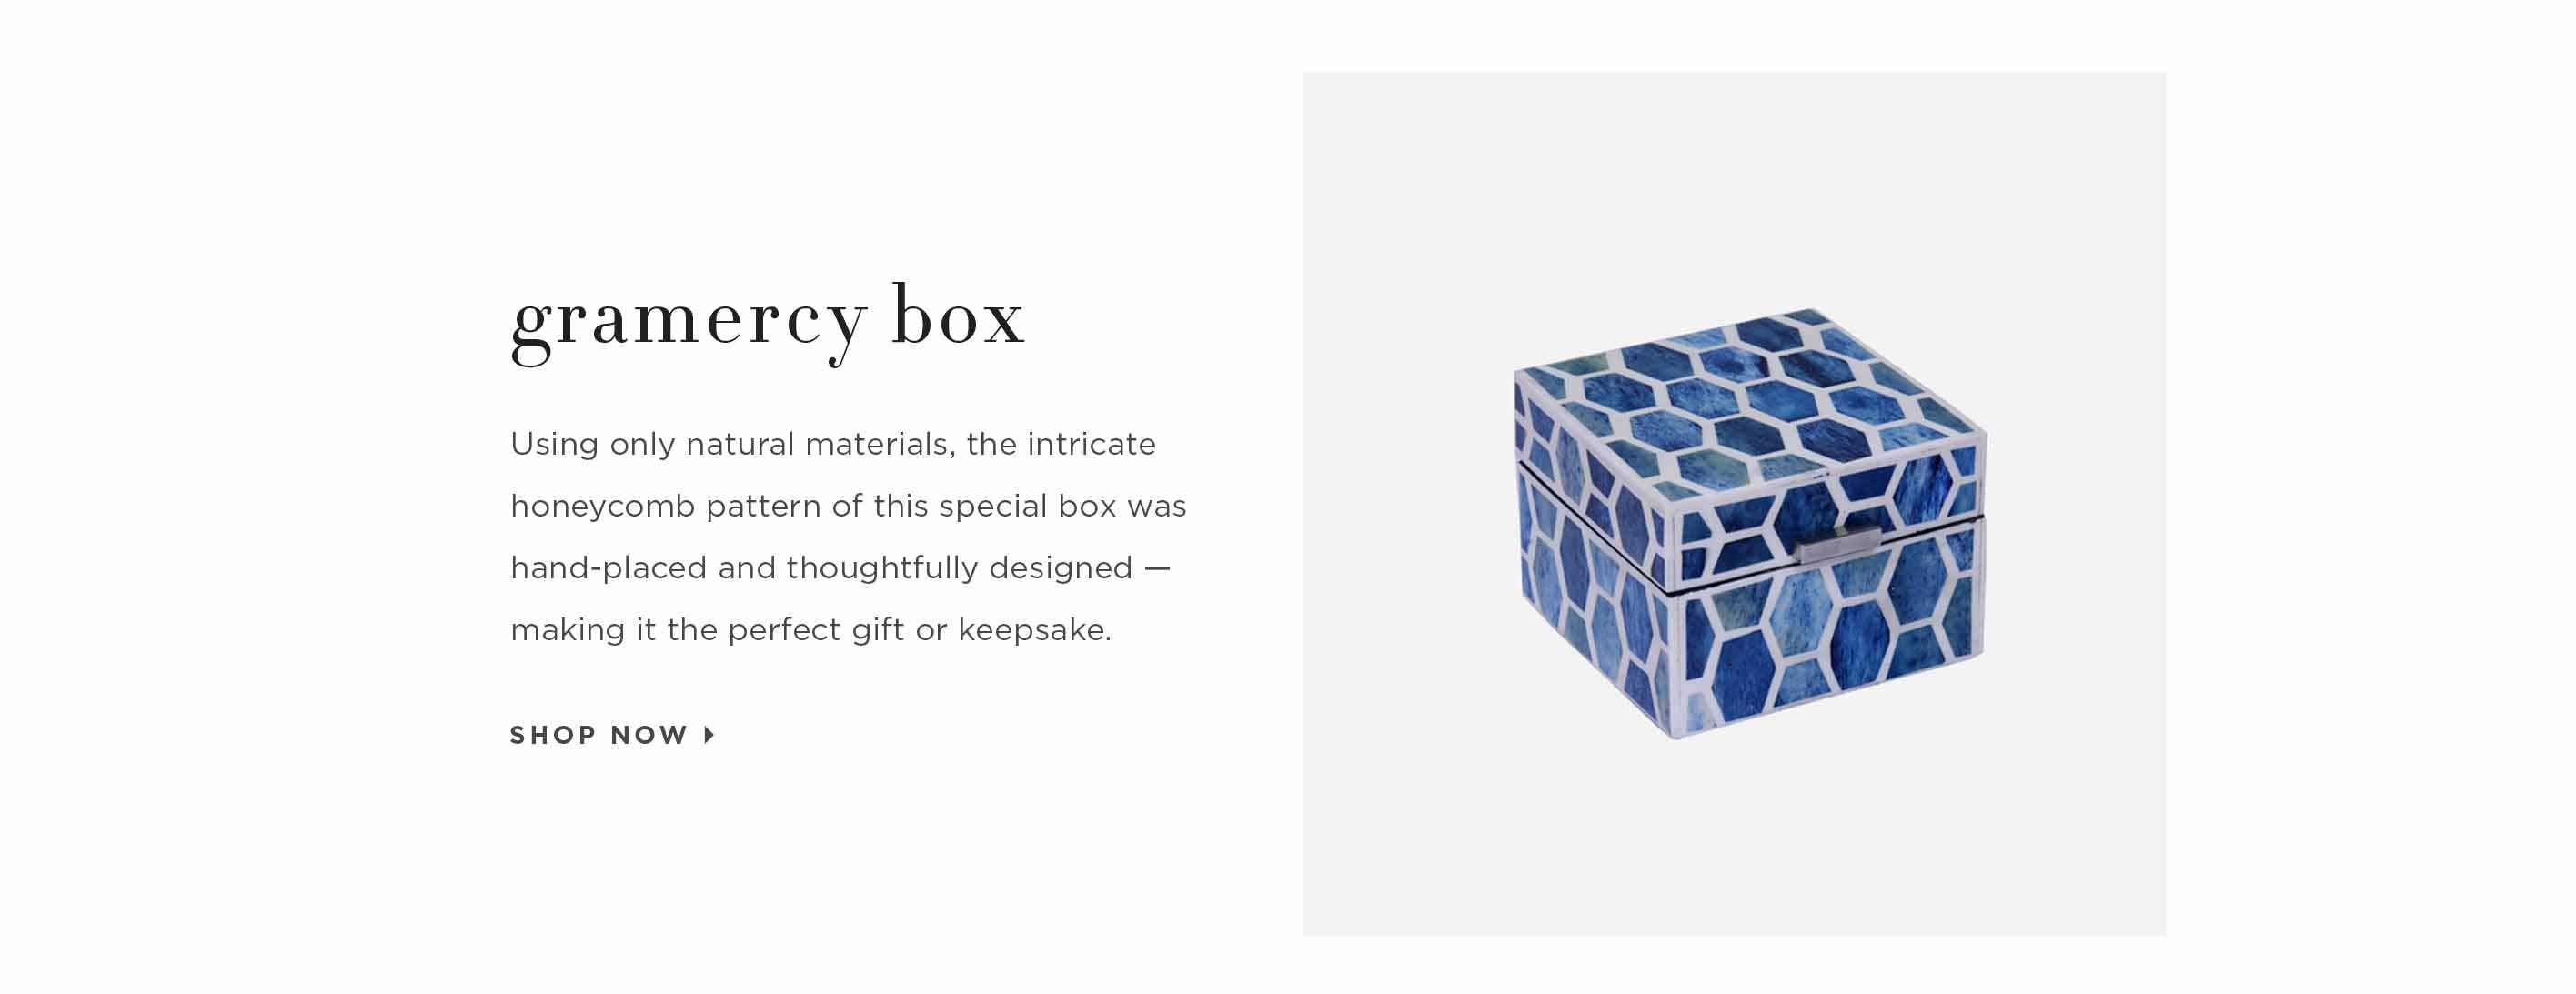 Gramercy Box - Using only natural materials, the intricate honeycomb pattern of this special box was hand-placed and thoughtfully designed — making it the perfect gift or keepsake. Shop now.